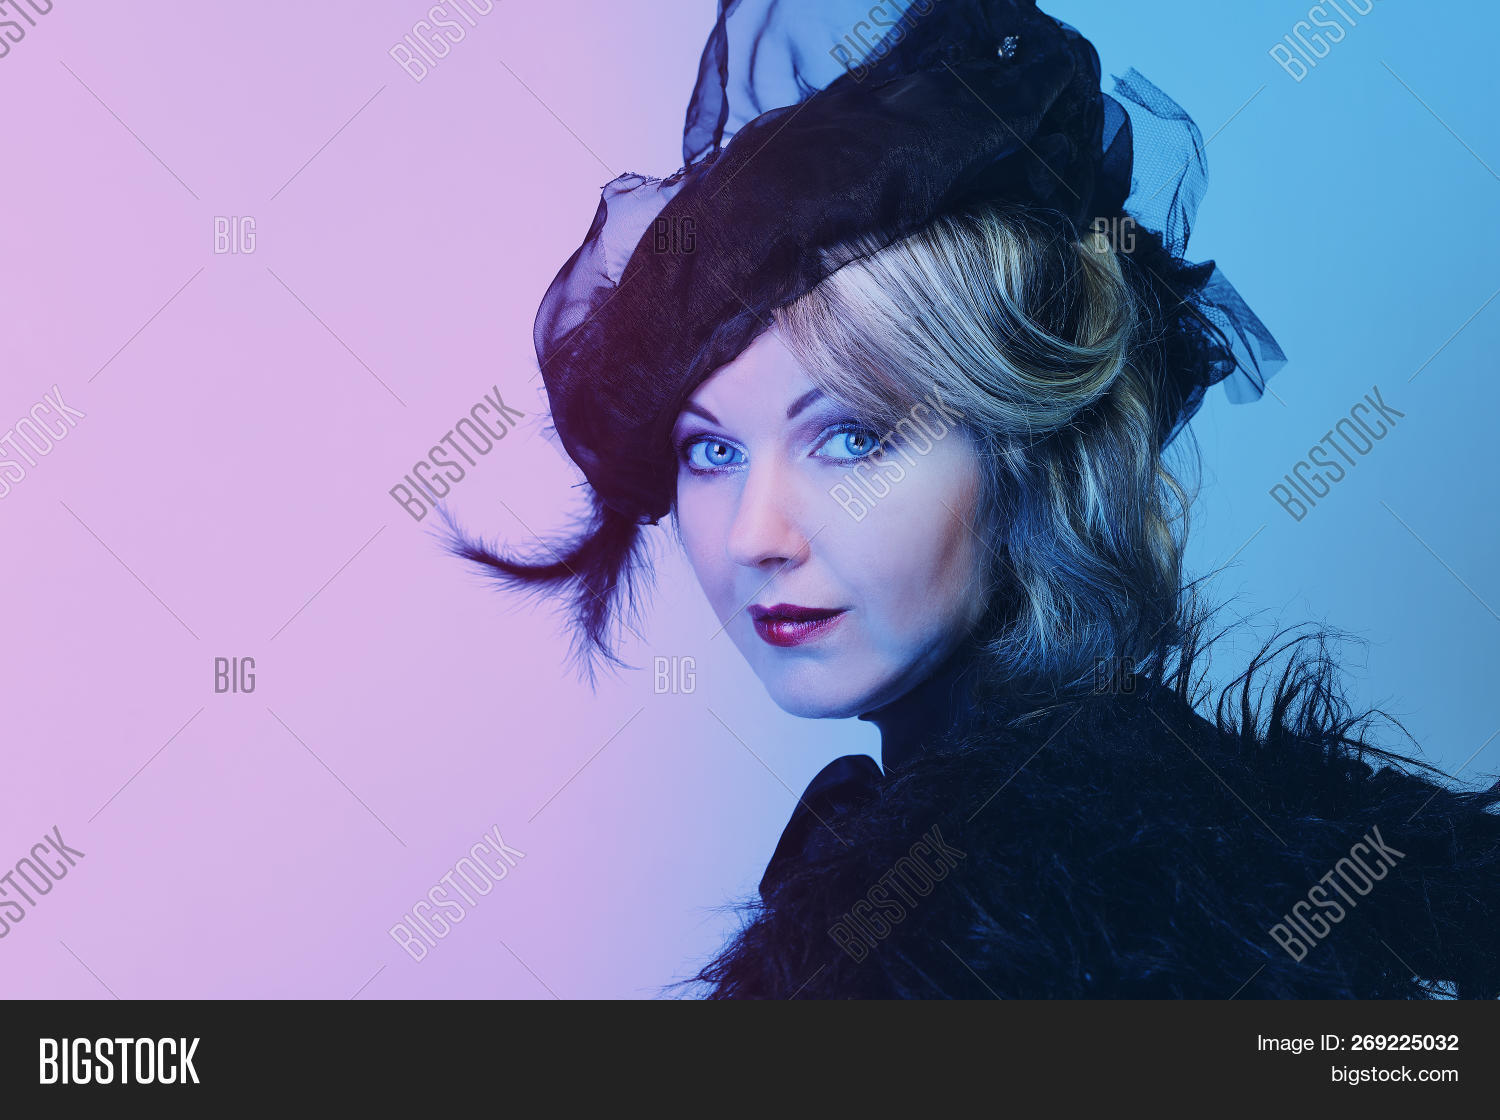 Elegant middle-aged woman in a black hat with a veil and a luxury dress 7a06a4c2c6f4